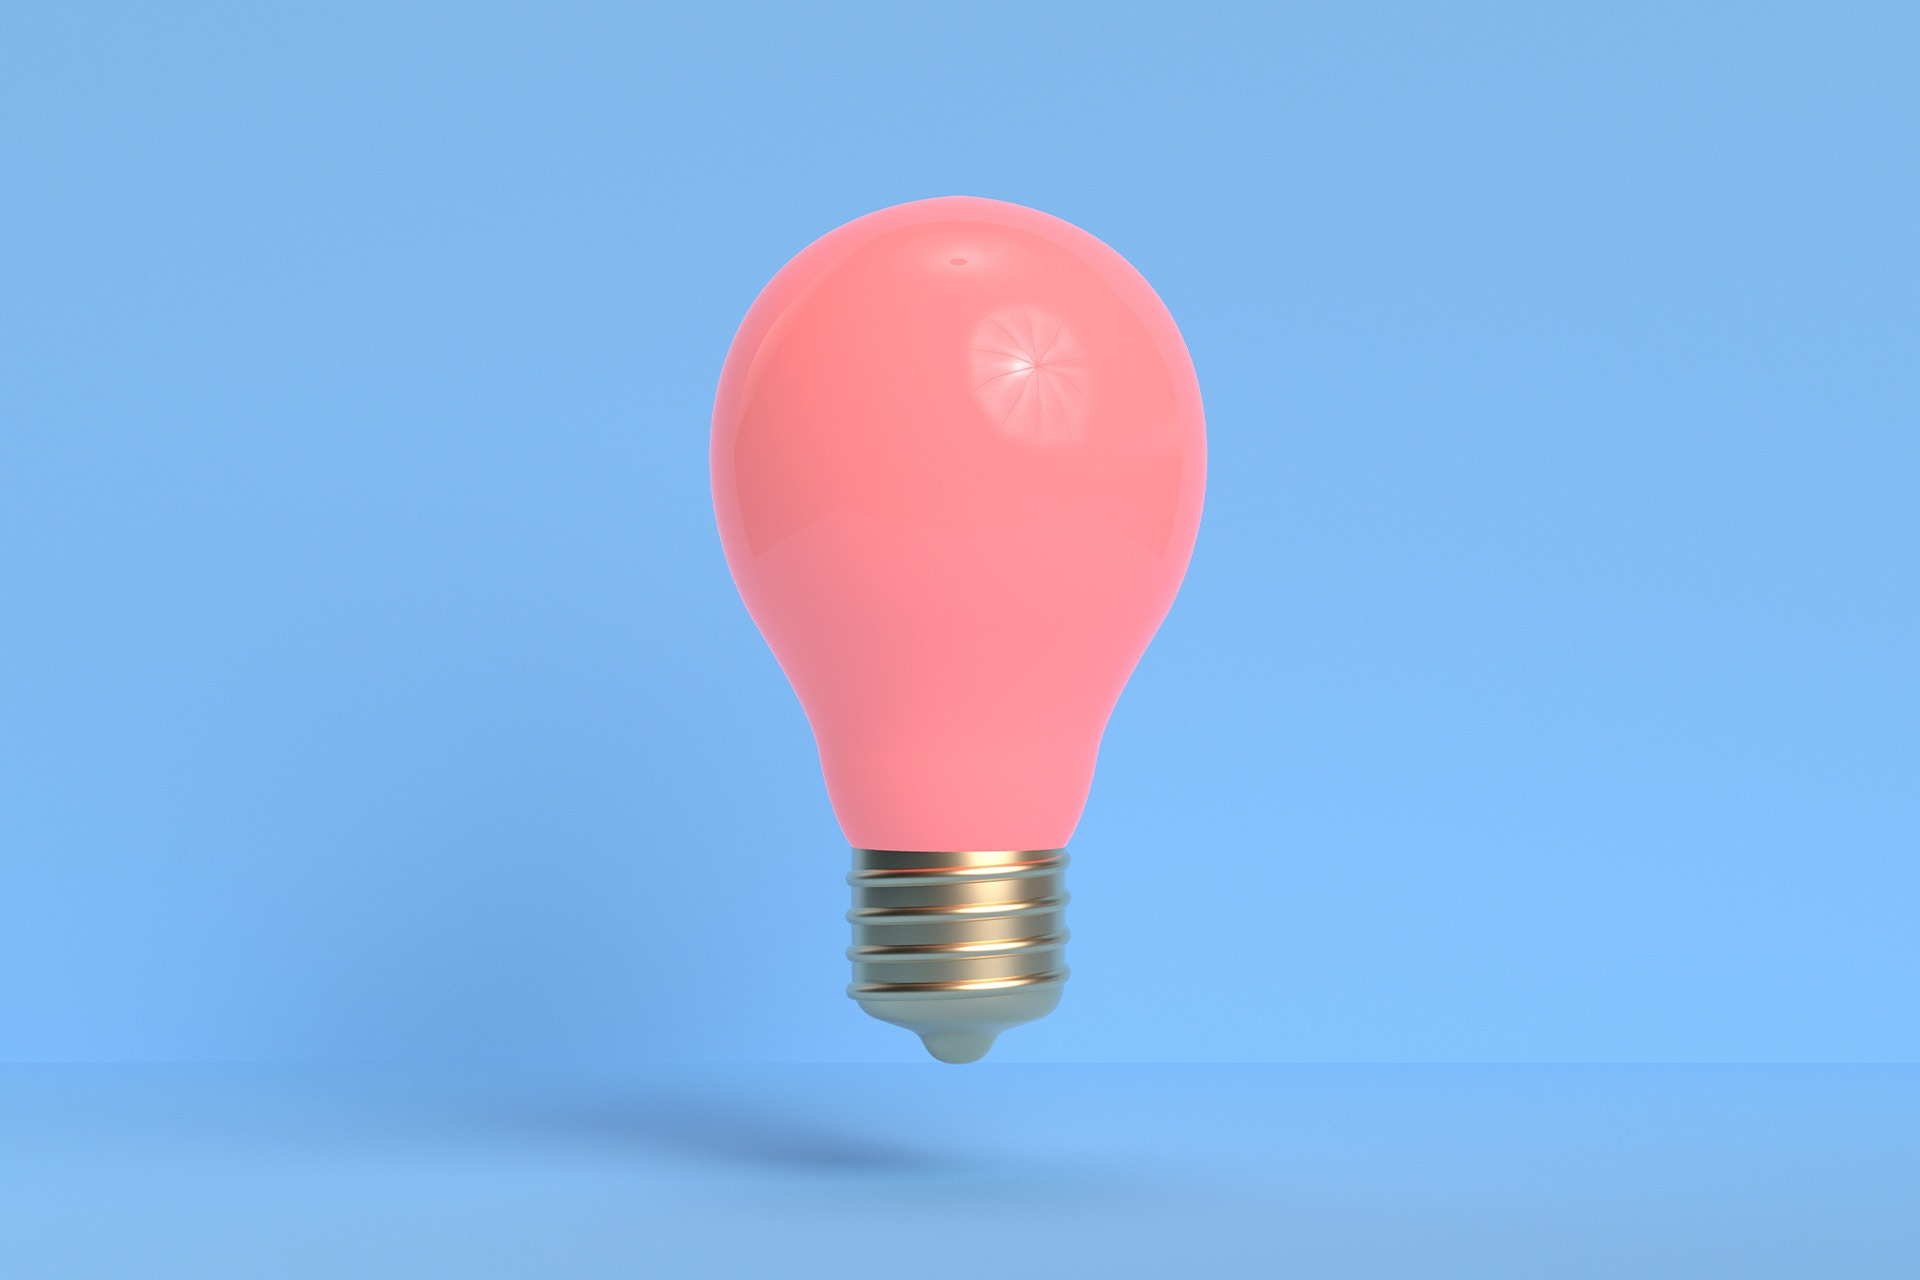 A bright pink lightbulb hovering in the air in front of a pale blue background. This image is used to describe a blog post outlining several ideas on how to use social walls in your marketing campaigns.